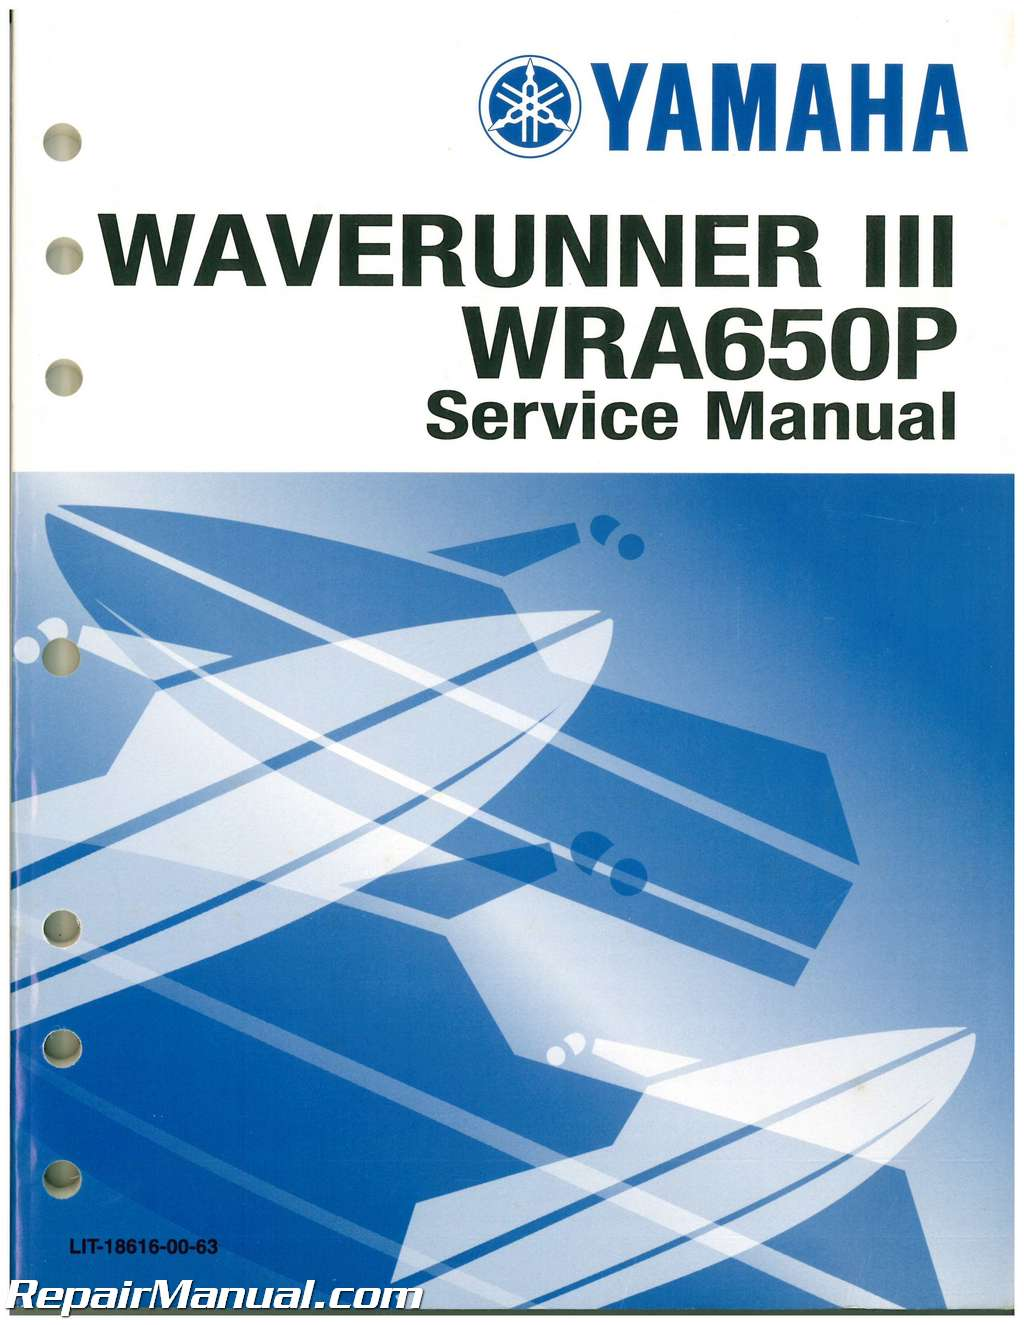 Used 1991 Yamaha Waverunner Iii Wra650p Service Manual Yamaha Waverunner  Engine Schematics Yamaha Waverunner Schematics